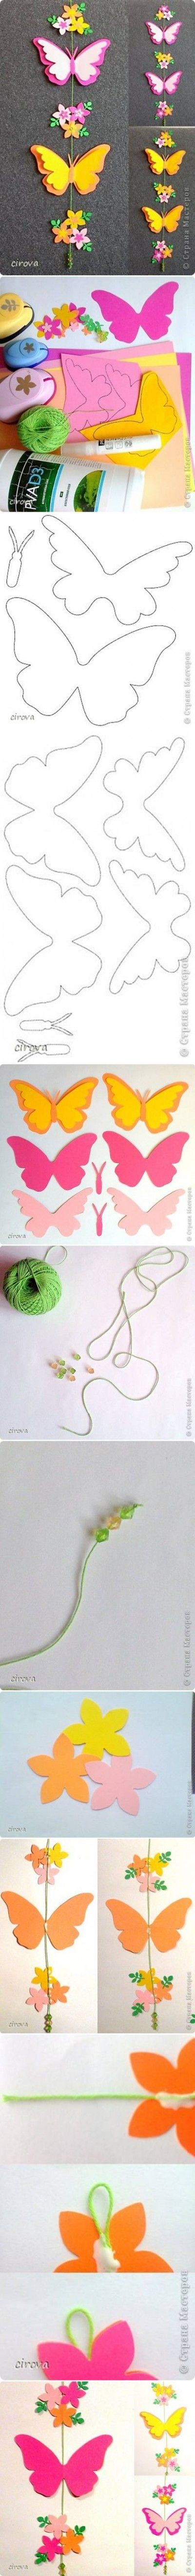 How to make Paper Butterfly Mobile step by step DIY tutorial instructions   - foamy / goma eva